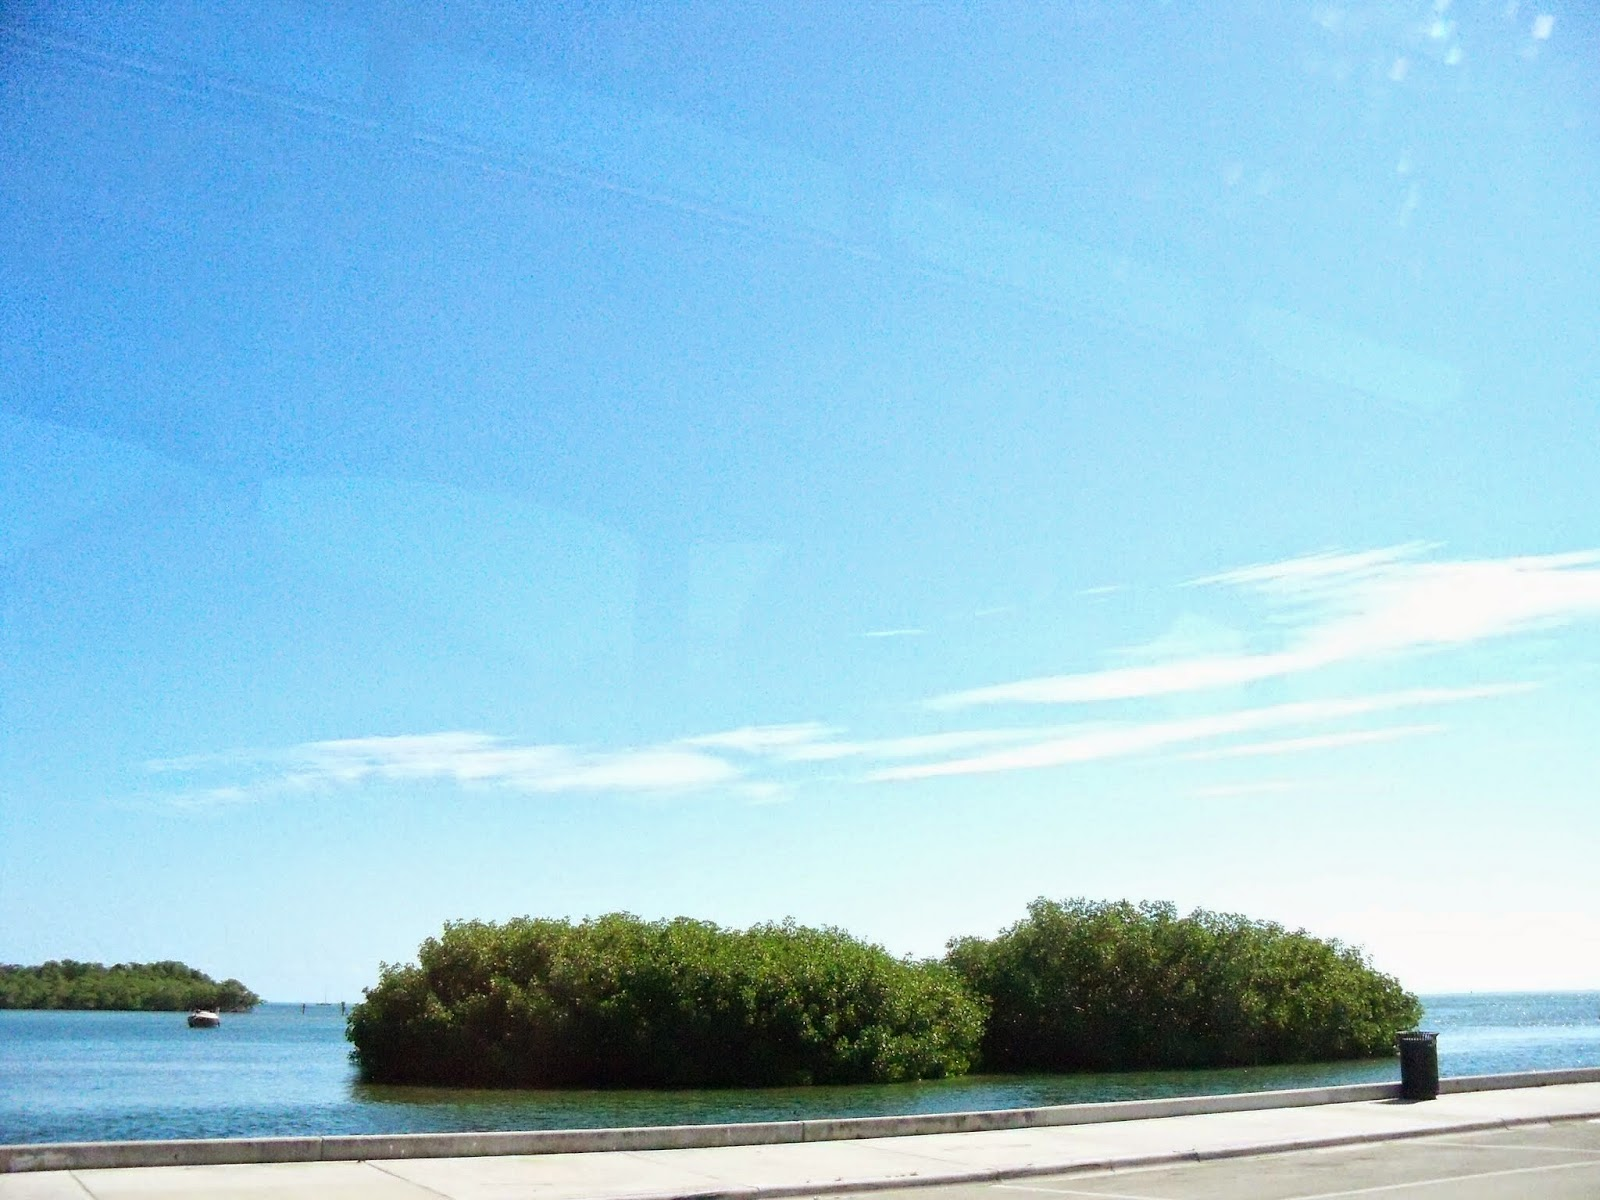 Key West Vacation - 116_5785.JPG